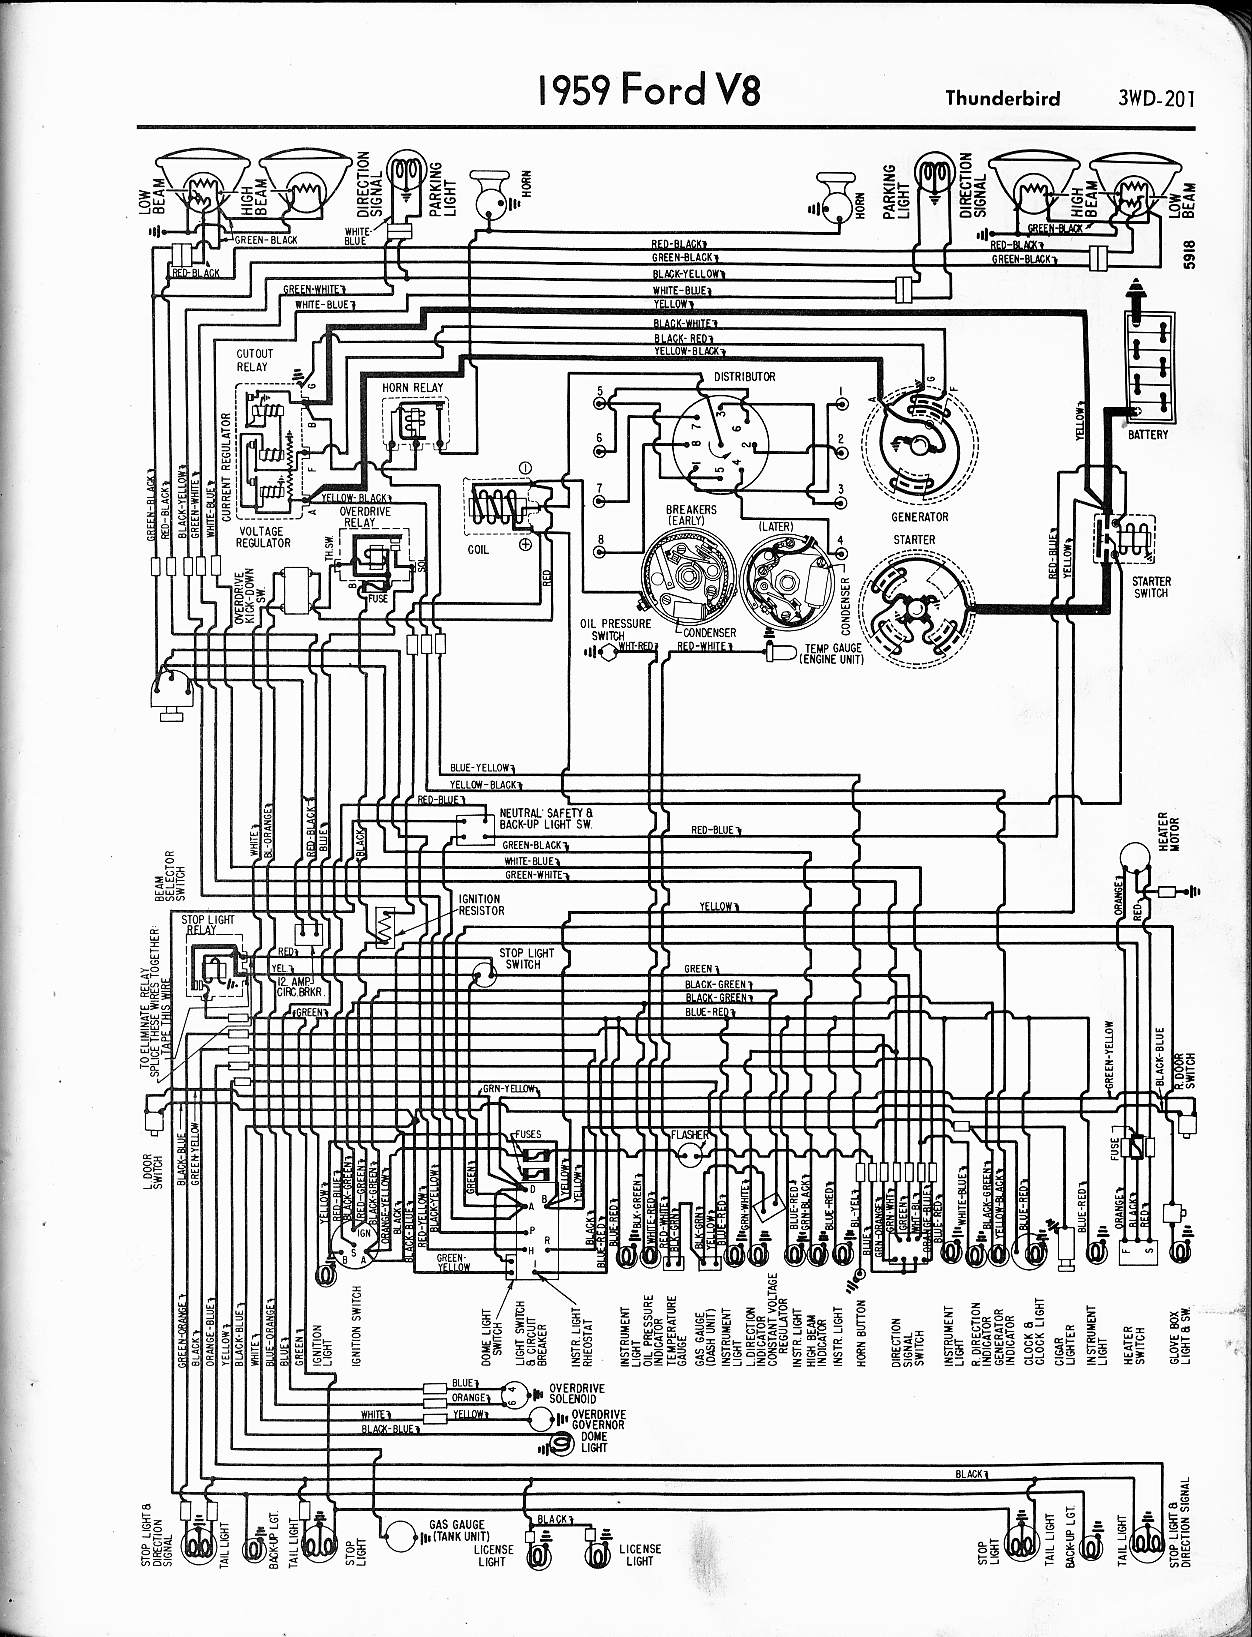 MWire5765 201 57 65 ford wiring diagrams 1959 ford f100 wiring harness at bayanpartner.co